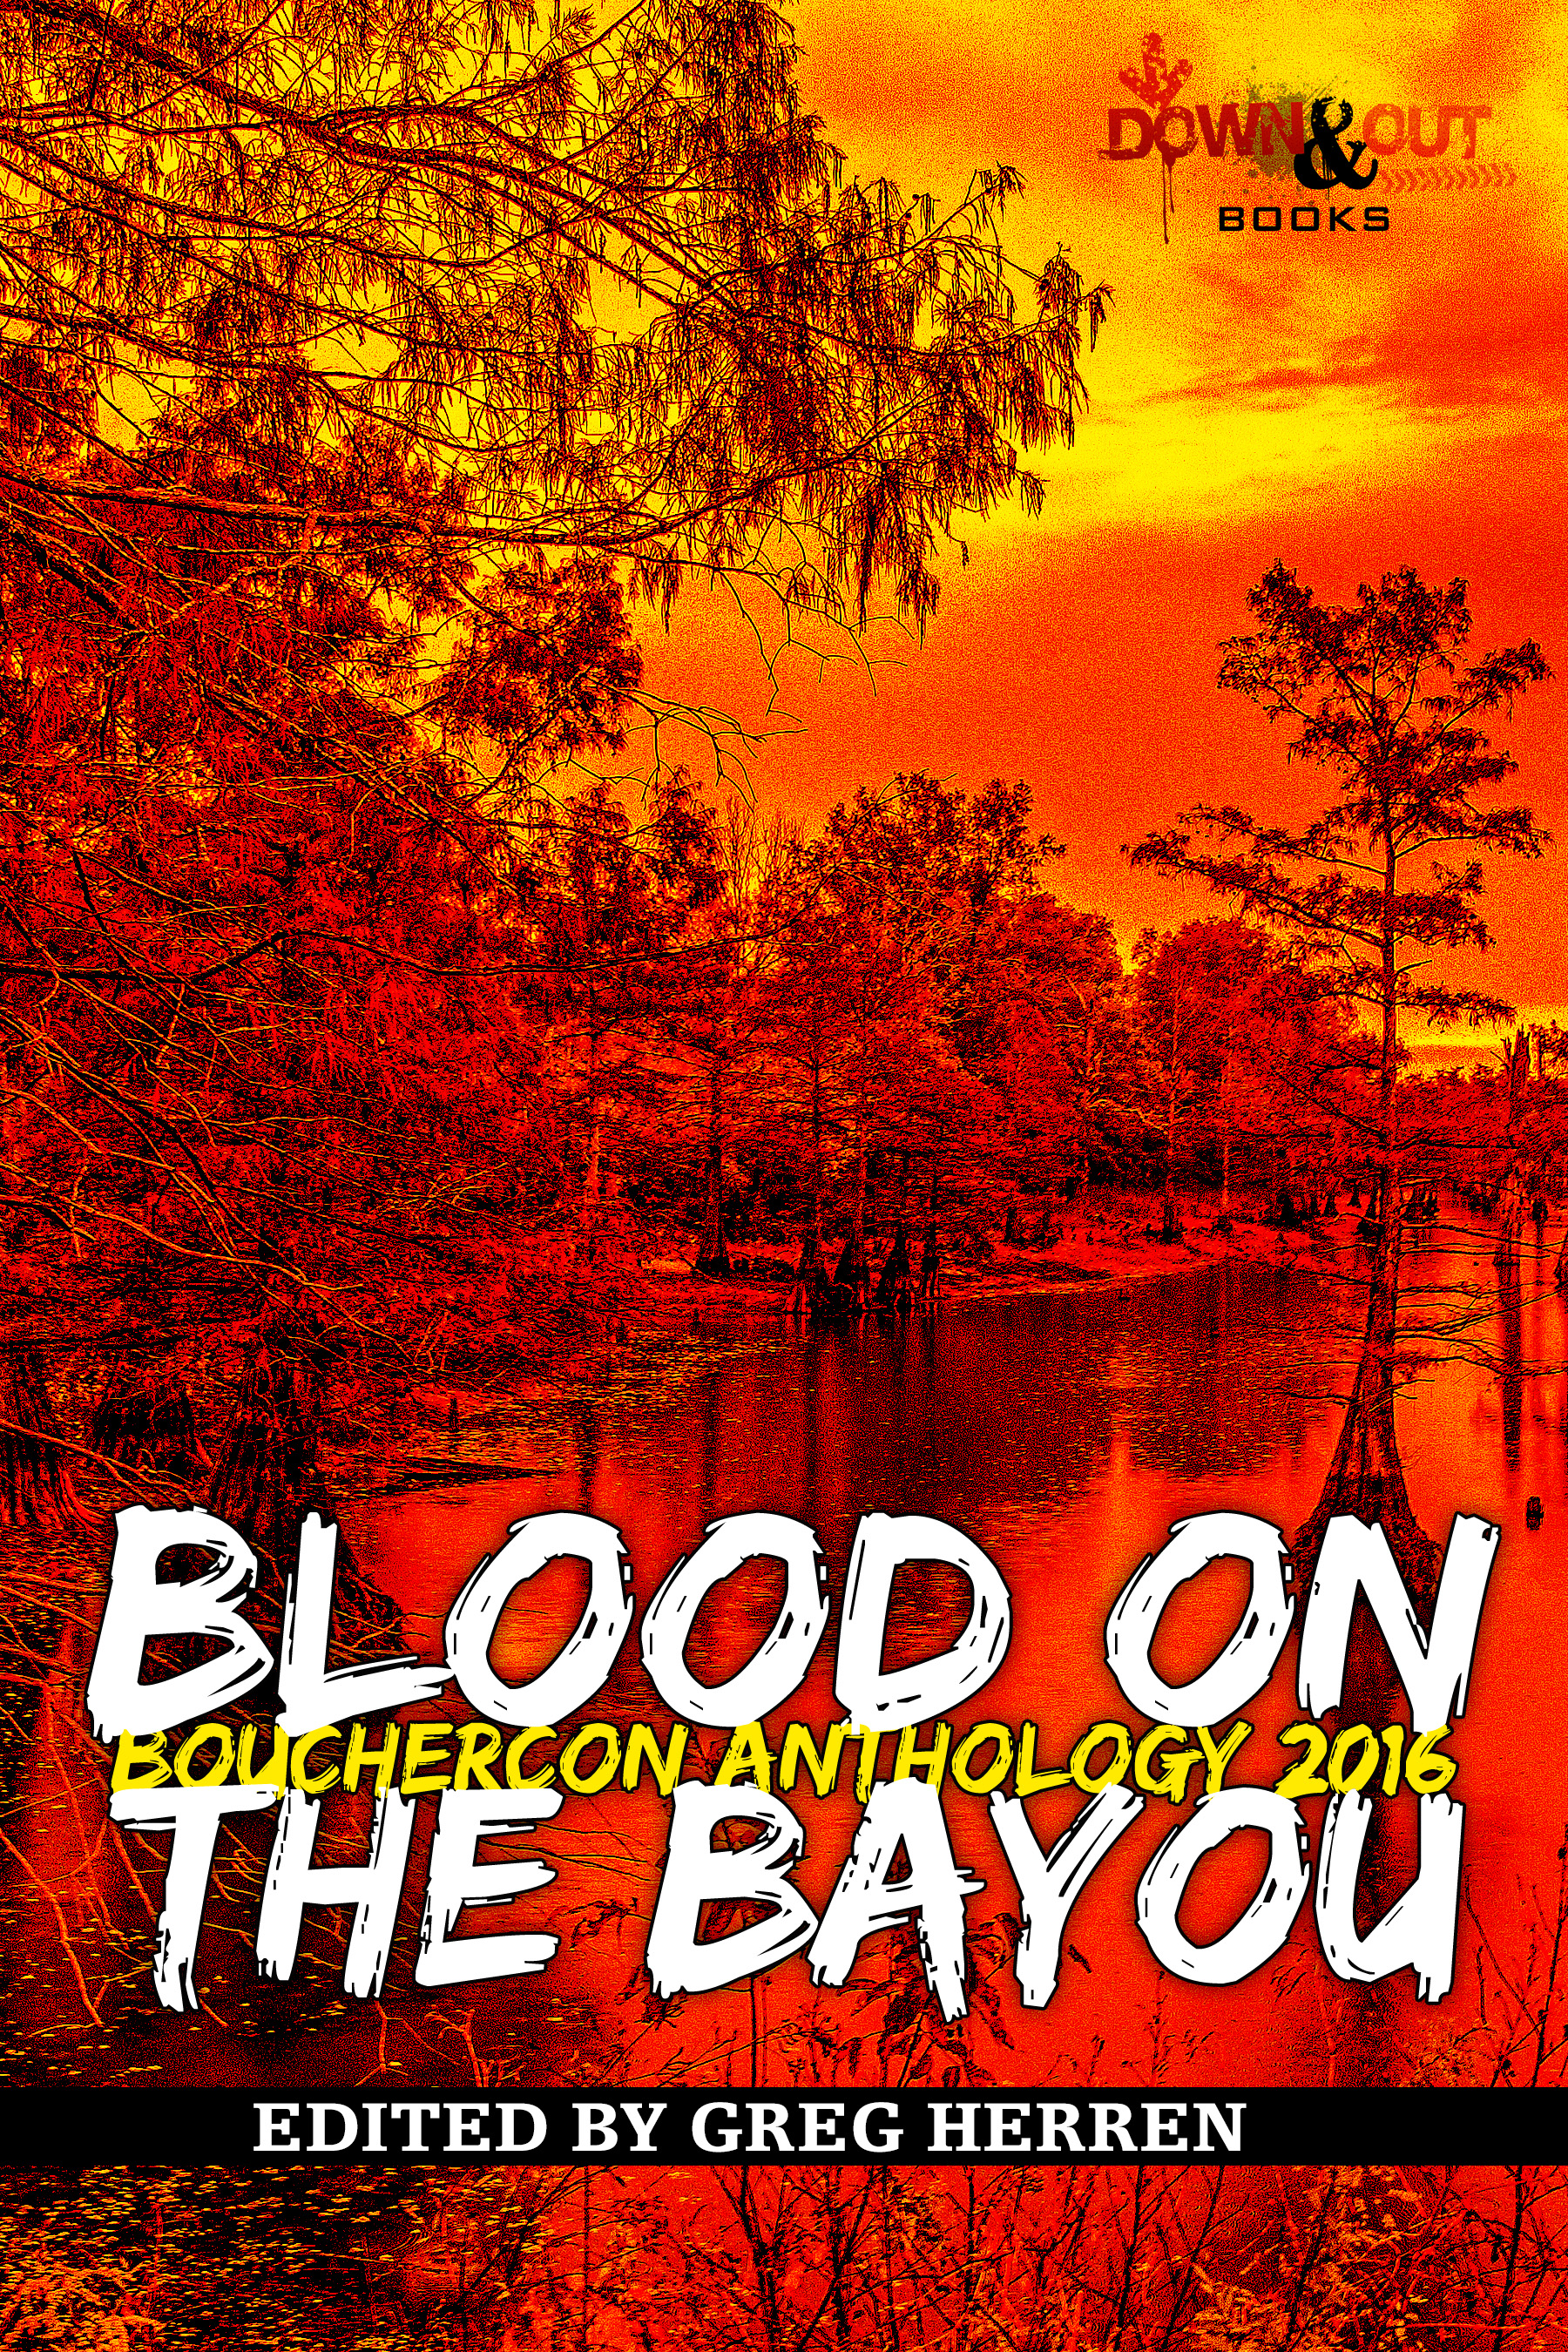 Bouchercon: Blood on the Bayou - Anthony Award Winner for Best Anthology of 2016In my story,